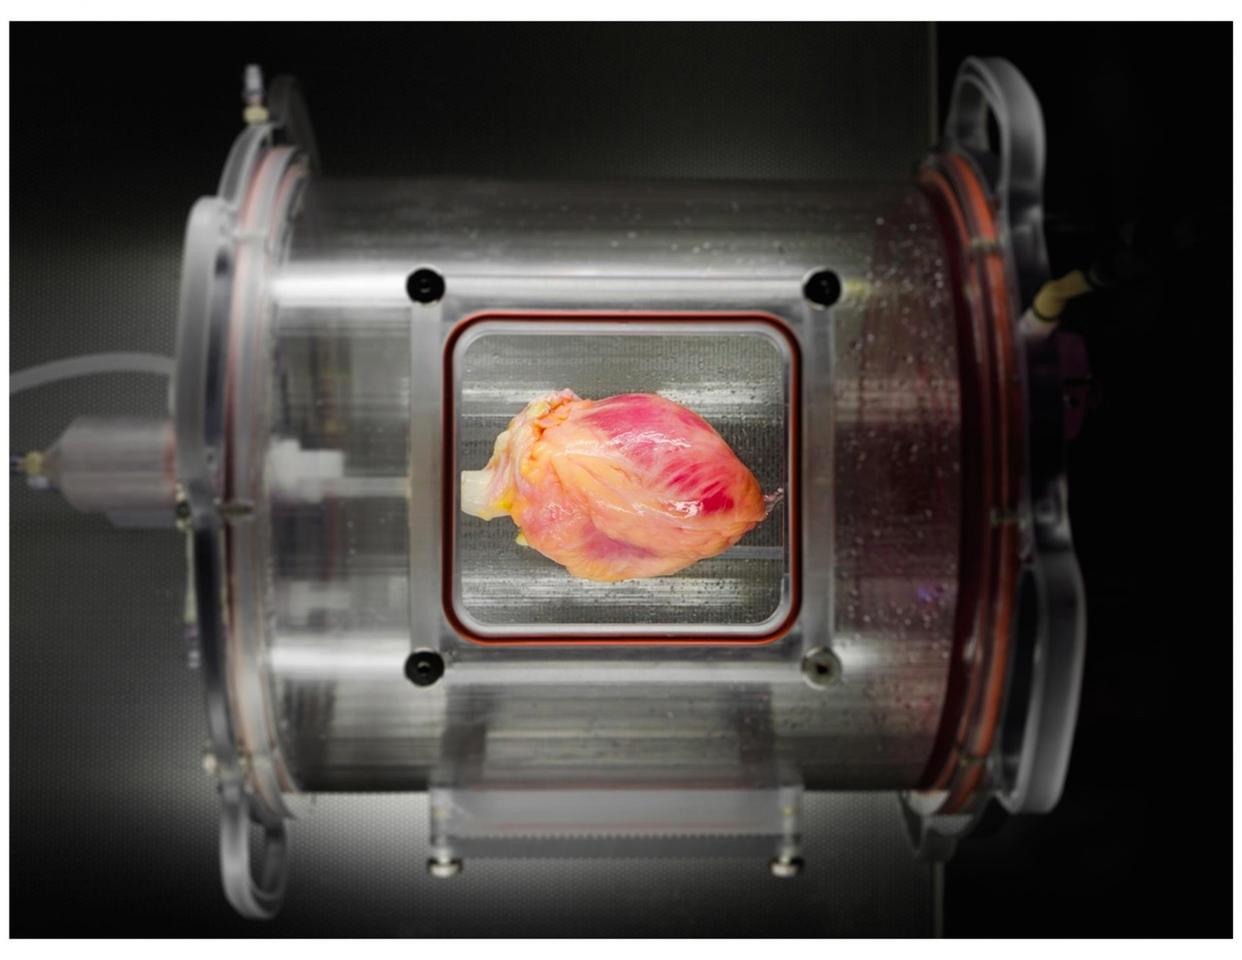 A partially recellularized human whole-heart cardiac scaffold, reseeded with human cardiomyocytes derived from induced pluripotent stem cells, being cultured in a bioreactor